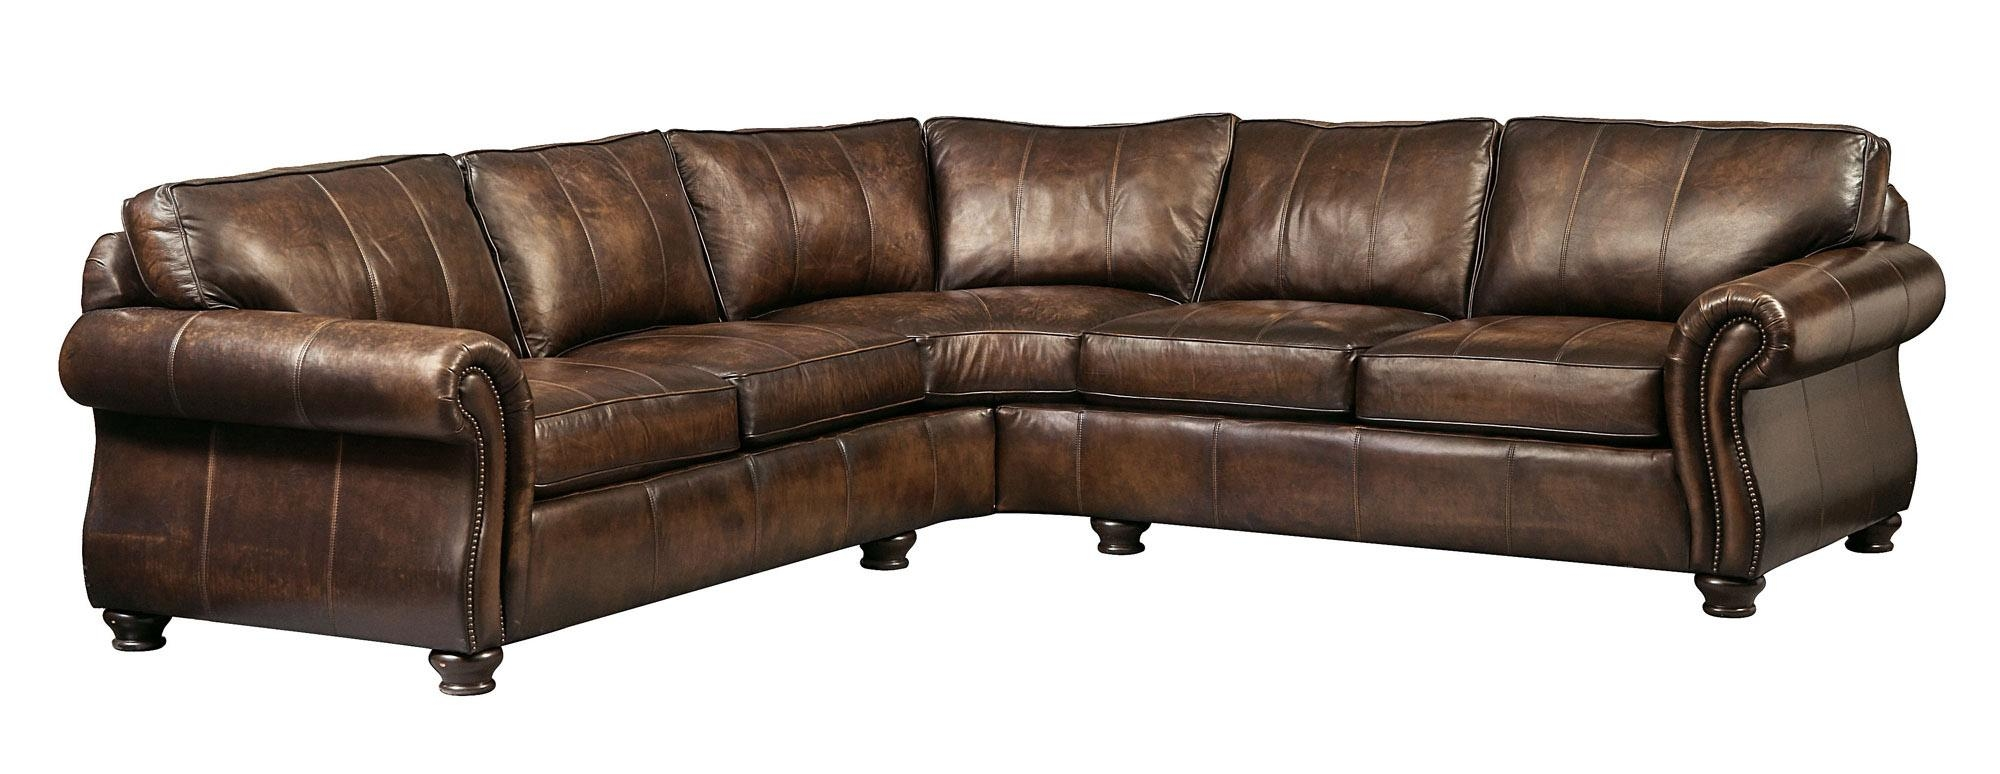 Leather Sofas | Baton Rouge And Lafayette, Louisiana Inside Regarding Foster Leather Sofas (Image 18 of 20)